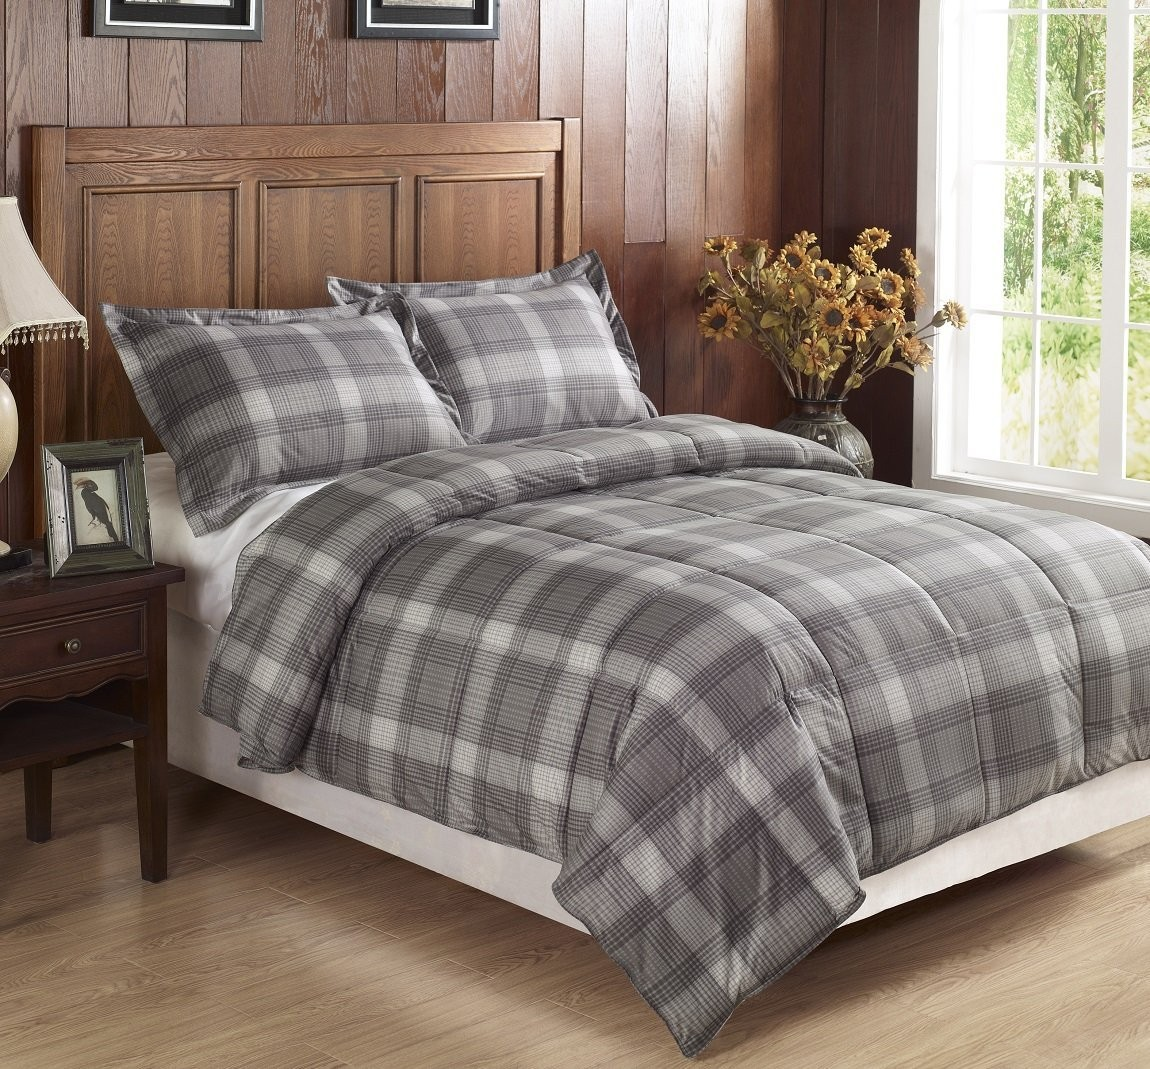 flannel sheets gallery - Flannel Sheets Queen